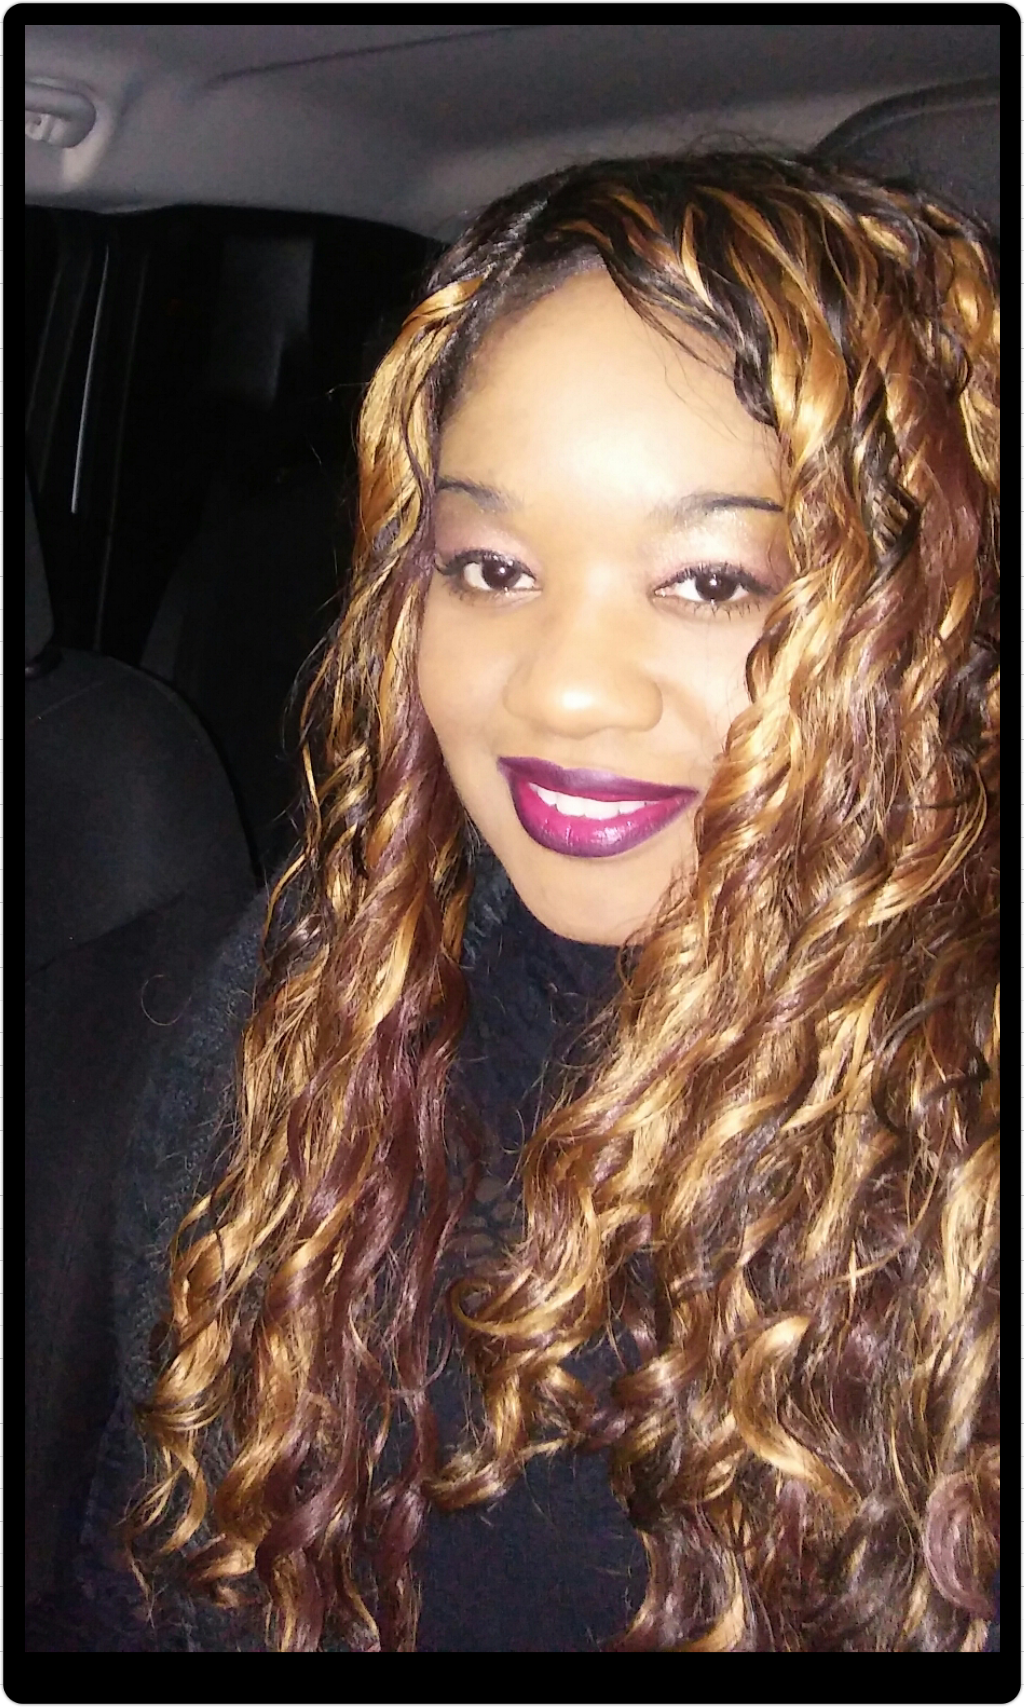 meet san saba singles Krishawna winston 2057565 206 s wallace creek rd san saba unit san saba, texas 76877 single, fun spirited, humorous woman who desires happiness.